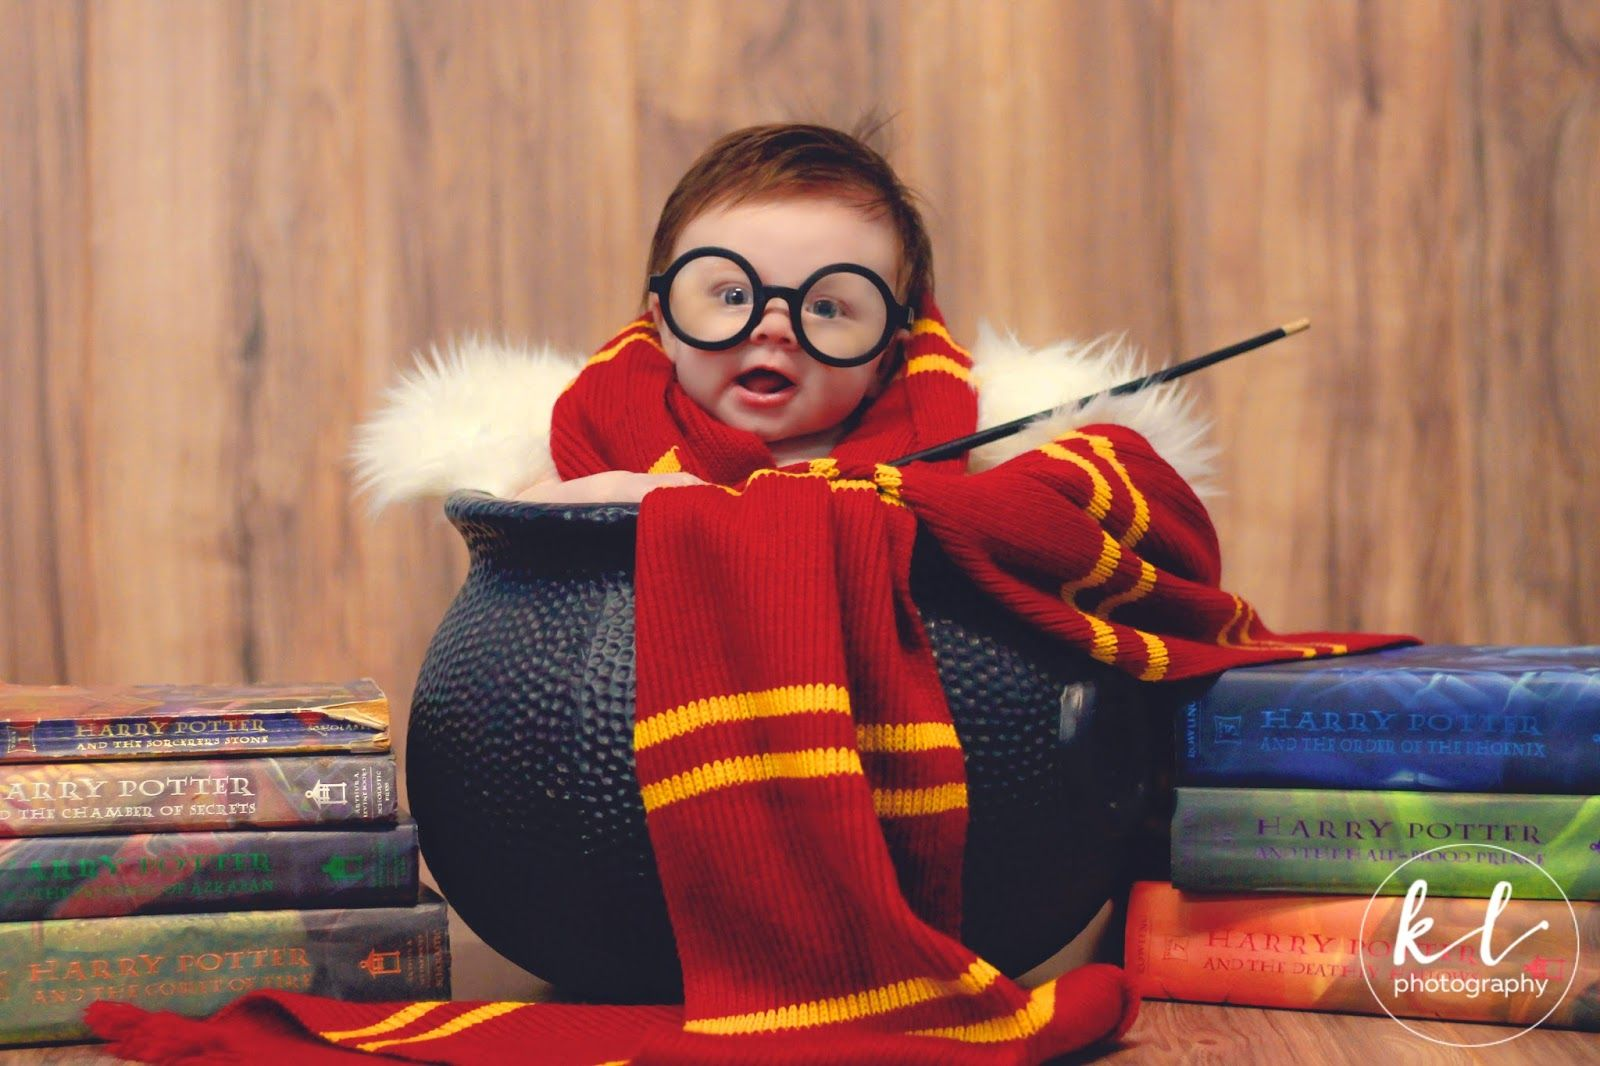 """This 3 month old baby """"harry potter"""" photo shoot could""""t get any cuter <3 http://ift.tt/2fQ2GAI"""